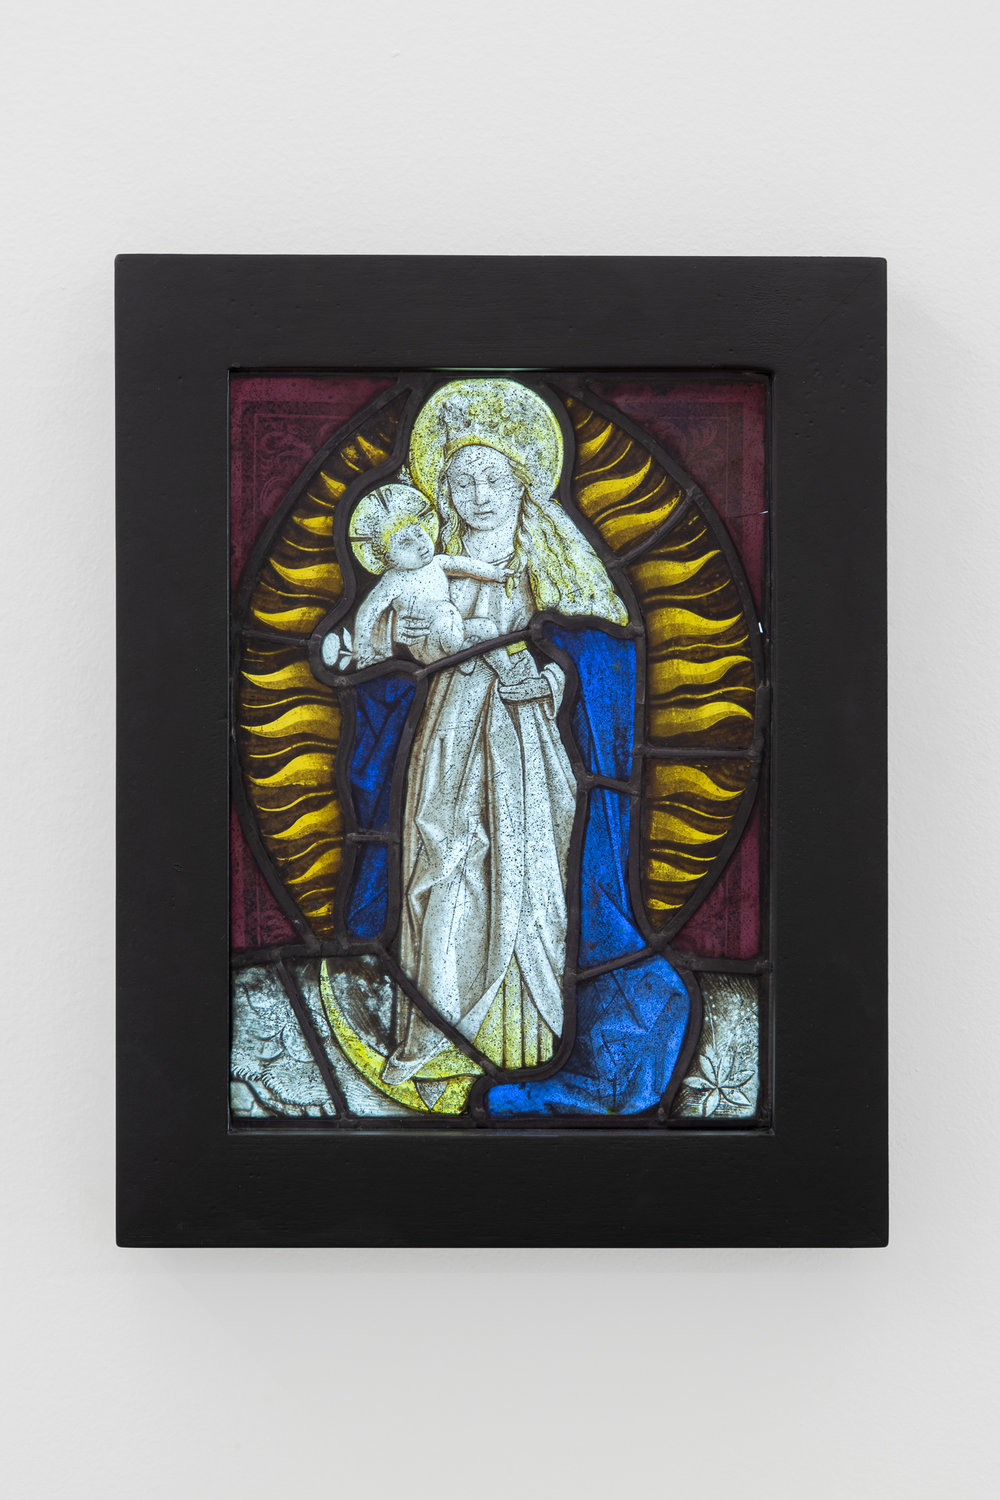 "Artist unknown, Flemish Stained glass, c. late 15th century, The Virgin is depicted as the ""Woman of the Apocalypse"", 27 x 20 cm"